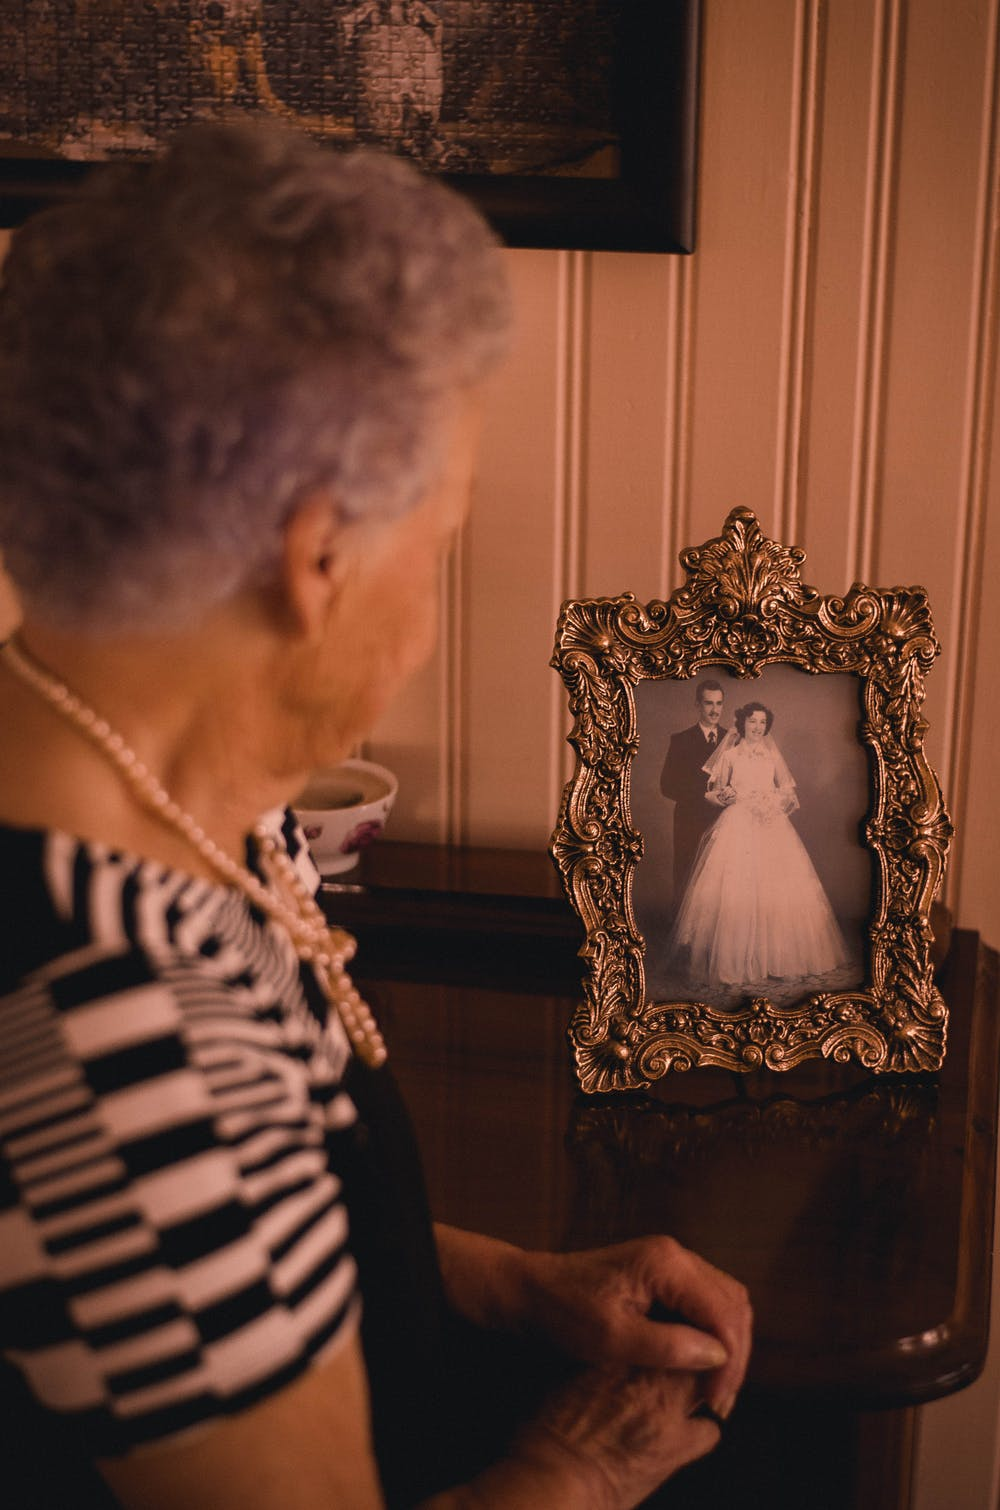 An old woman standing near the photo frame | Photo: Pexels